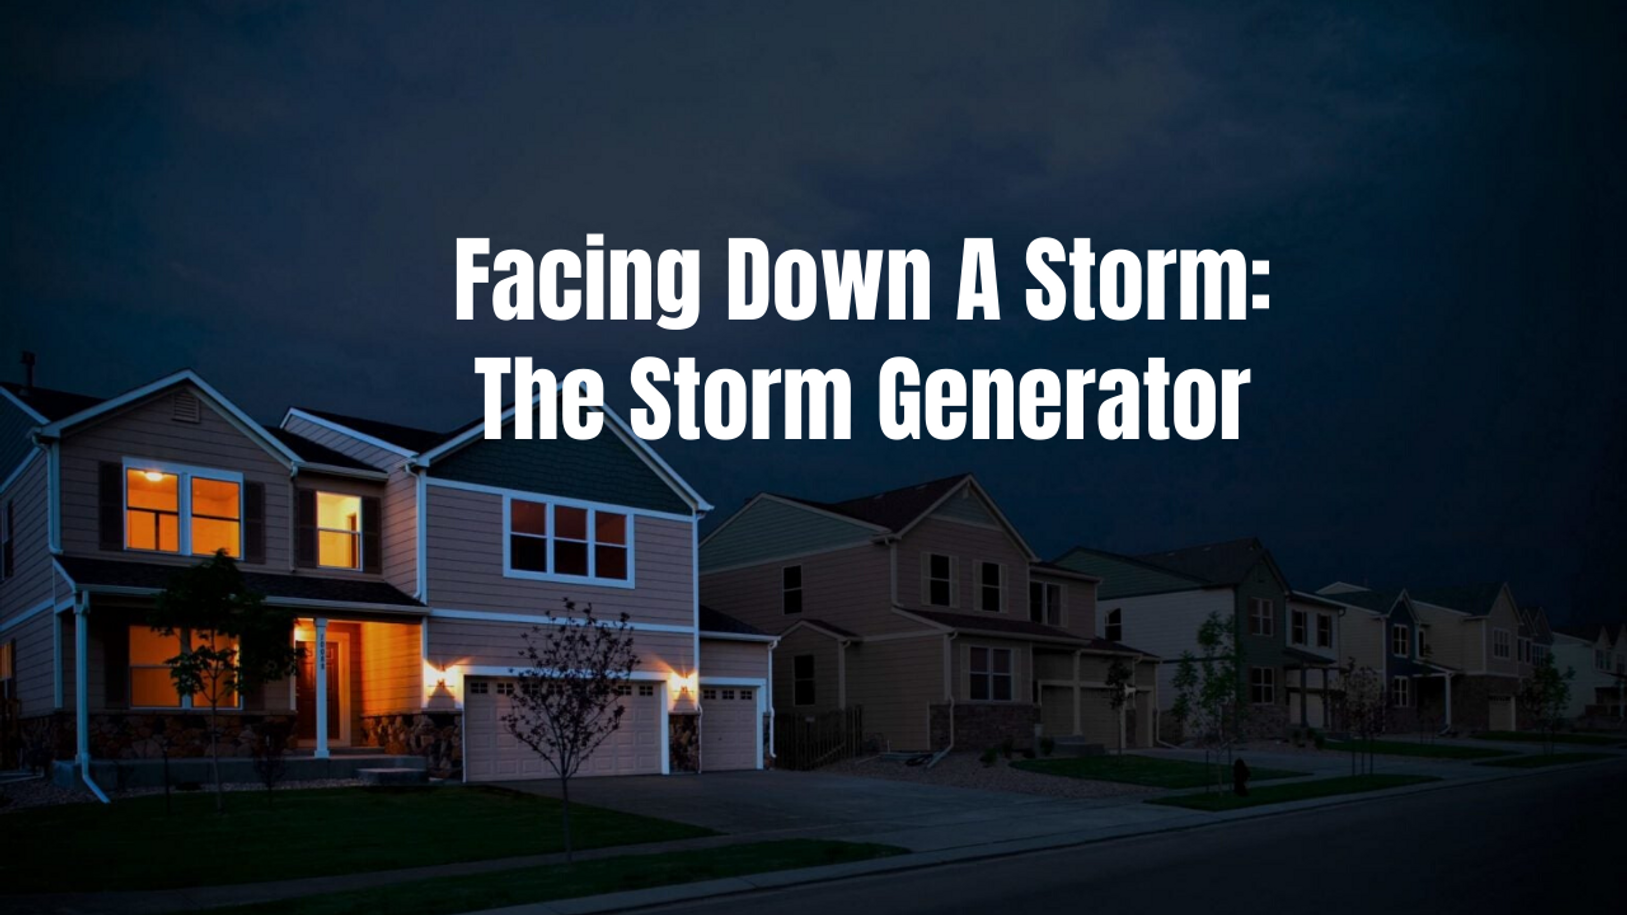 Facing Down A Storm: The Storm Generator